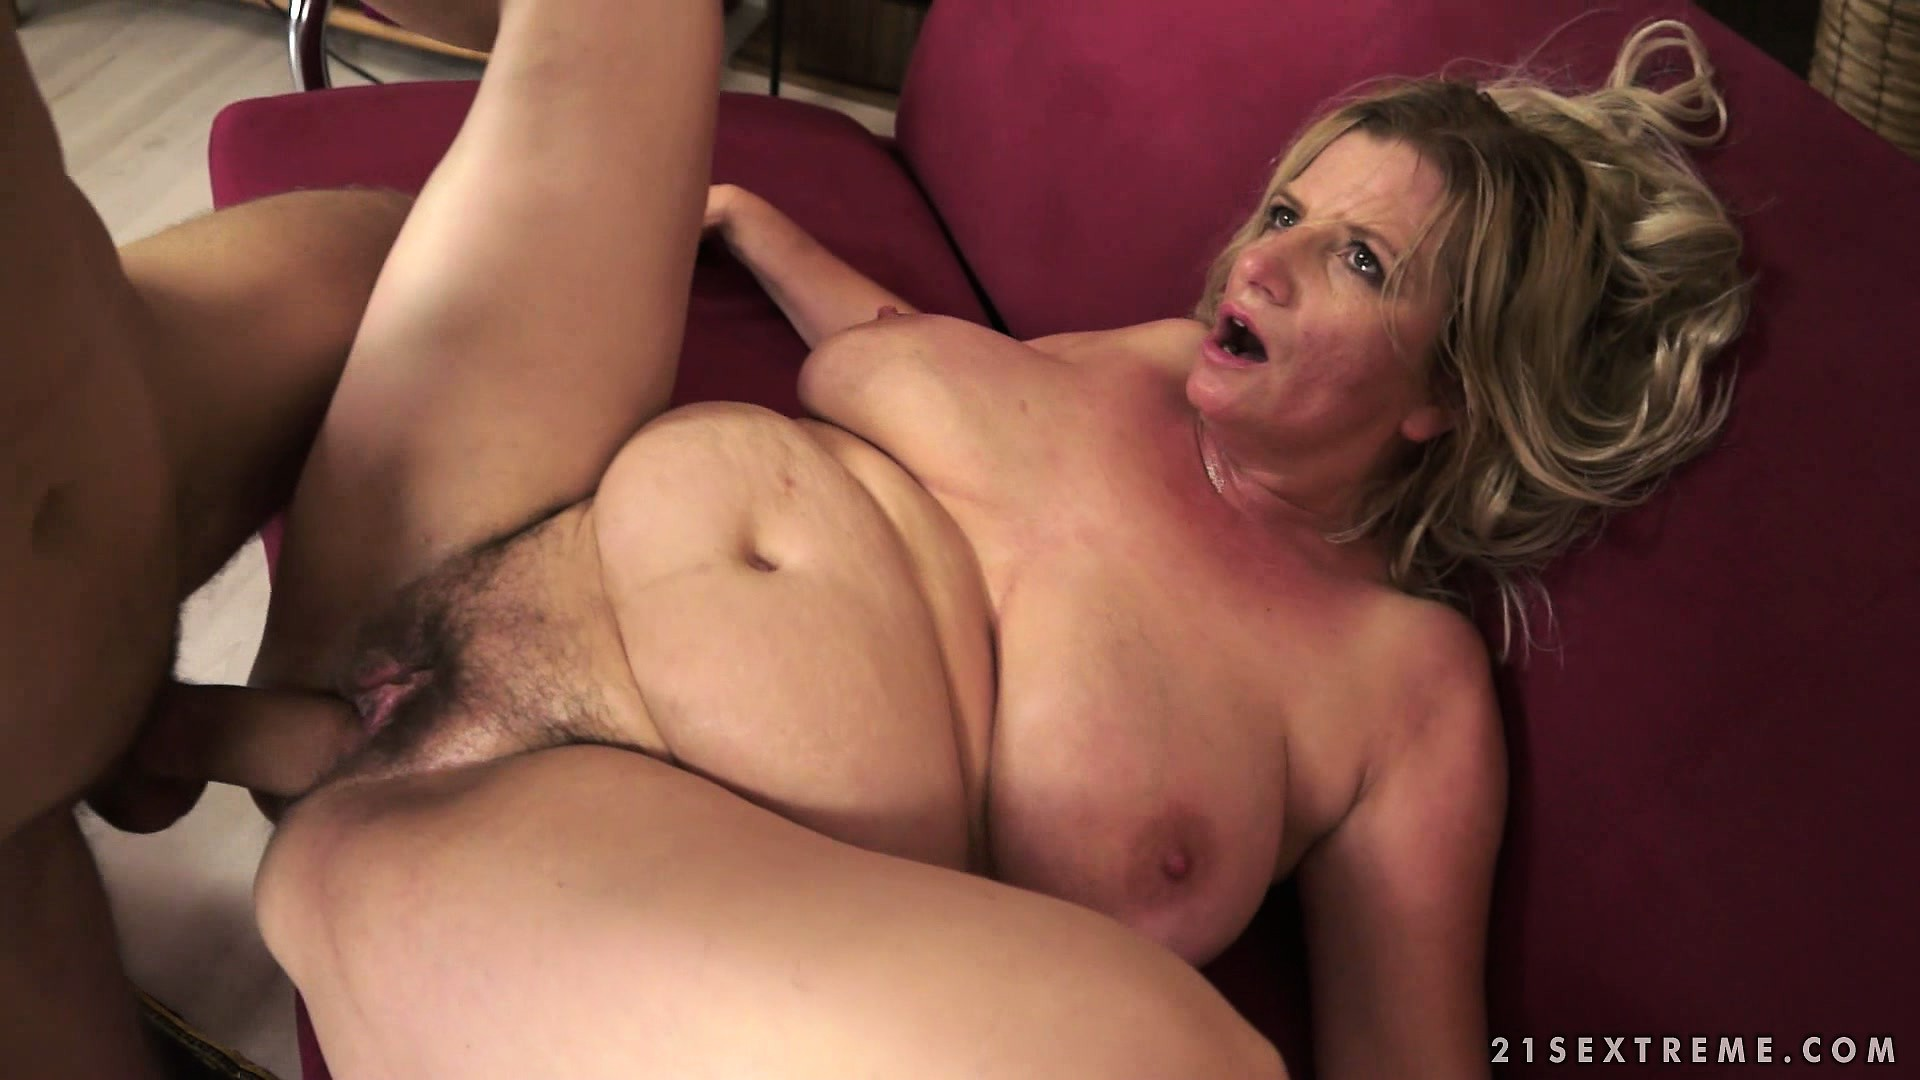 Simply excellent mature bdsm porn clips 4477 and